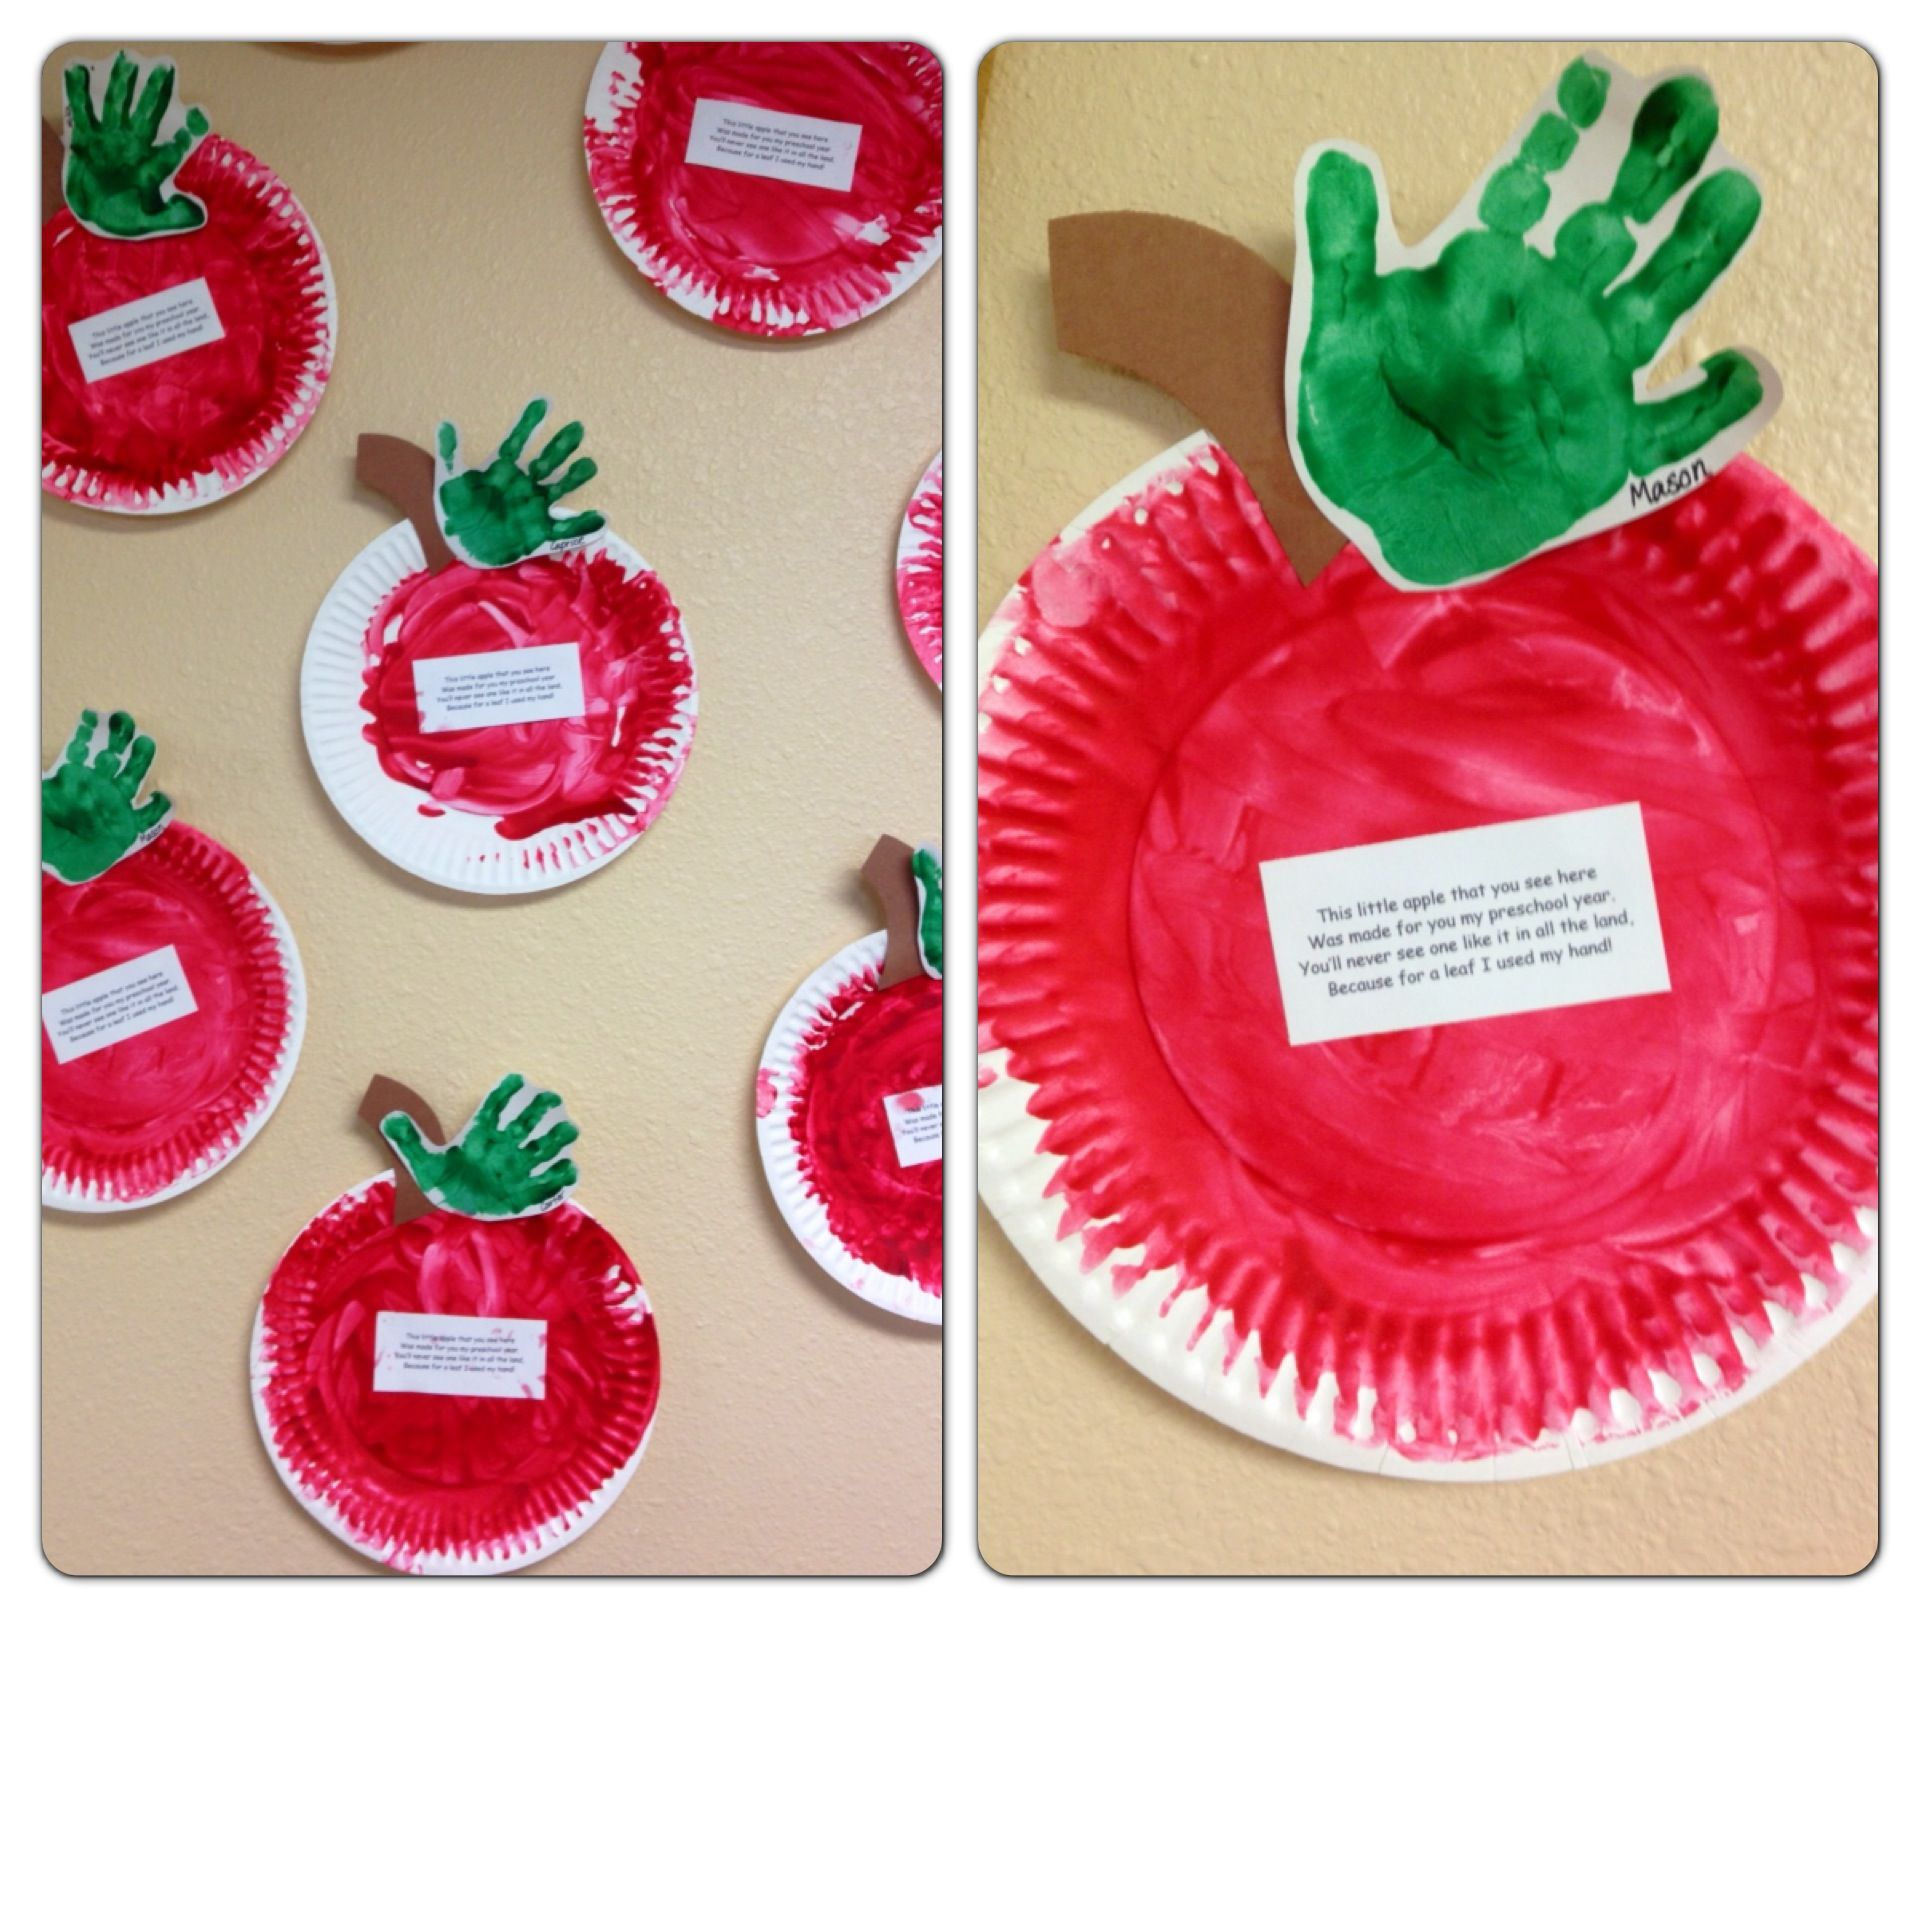 Classroom Ideas For 1 Year Olds : Paper plate apples fingerpainted with handprint leafs by